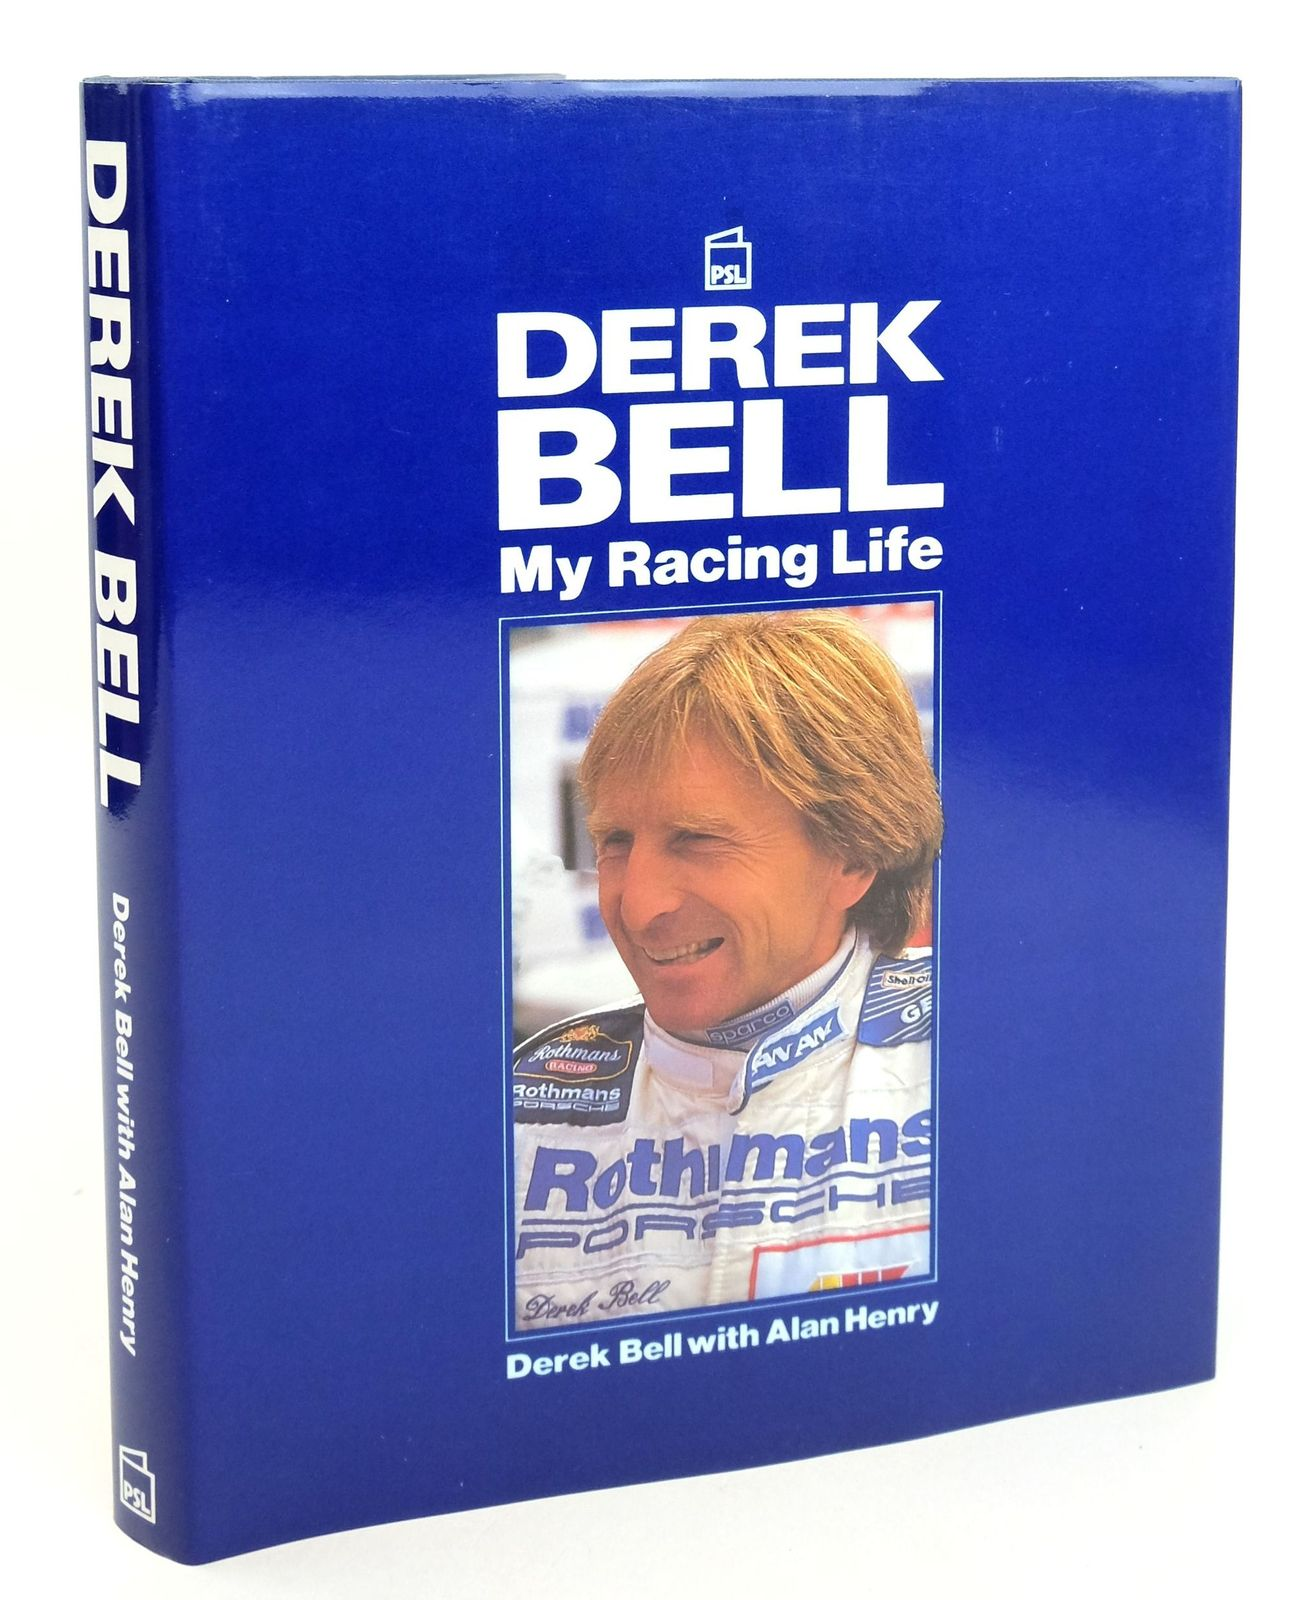 Photo of DEREK BELL MY RACING LIFE- Stock Number: 1819341